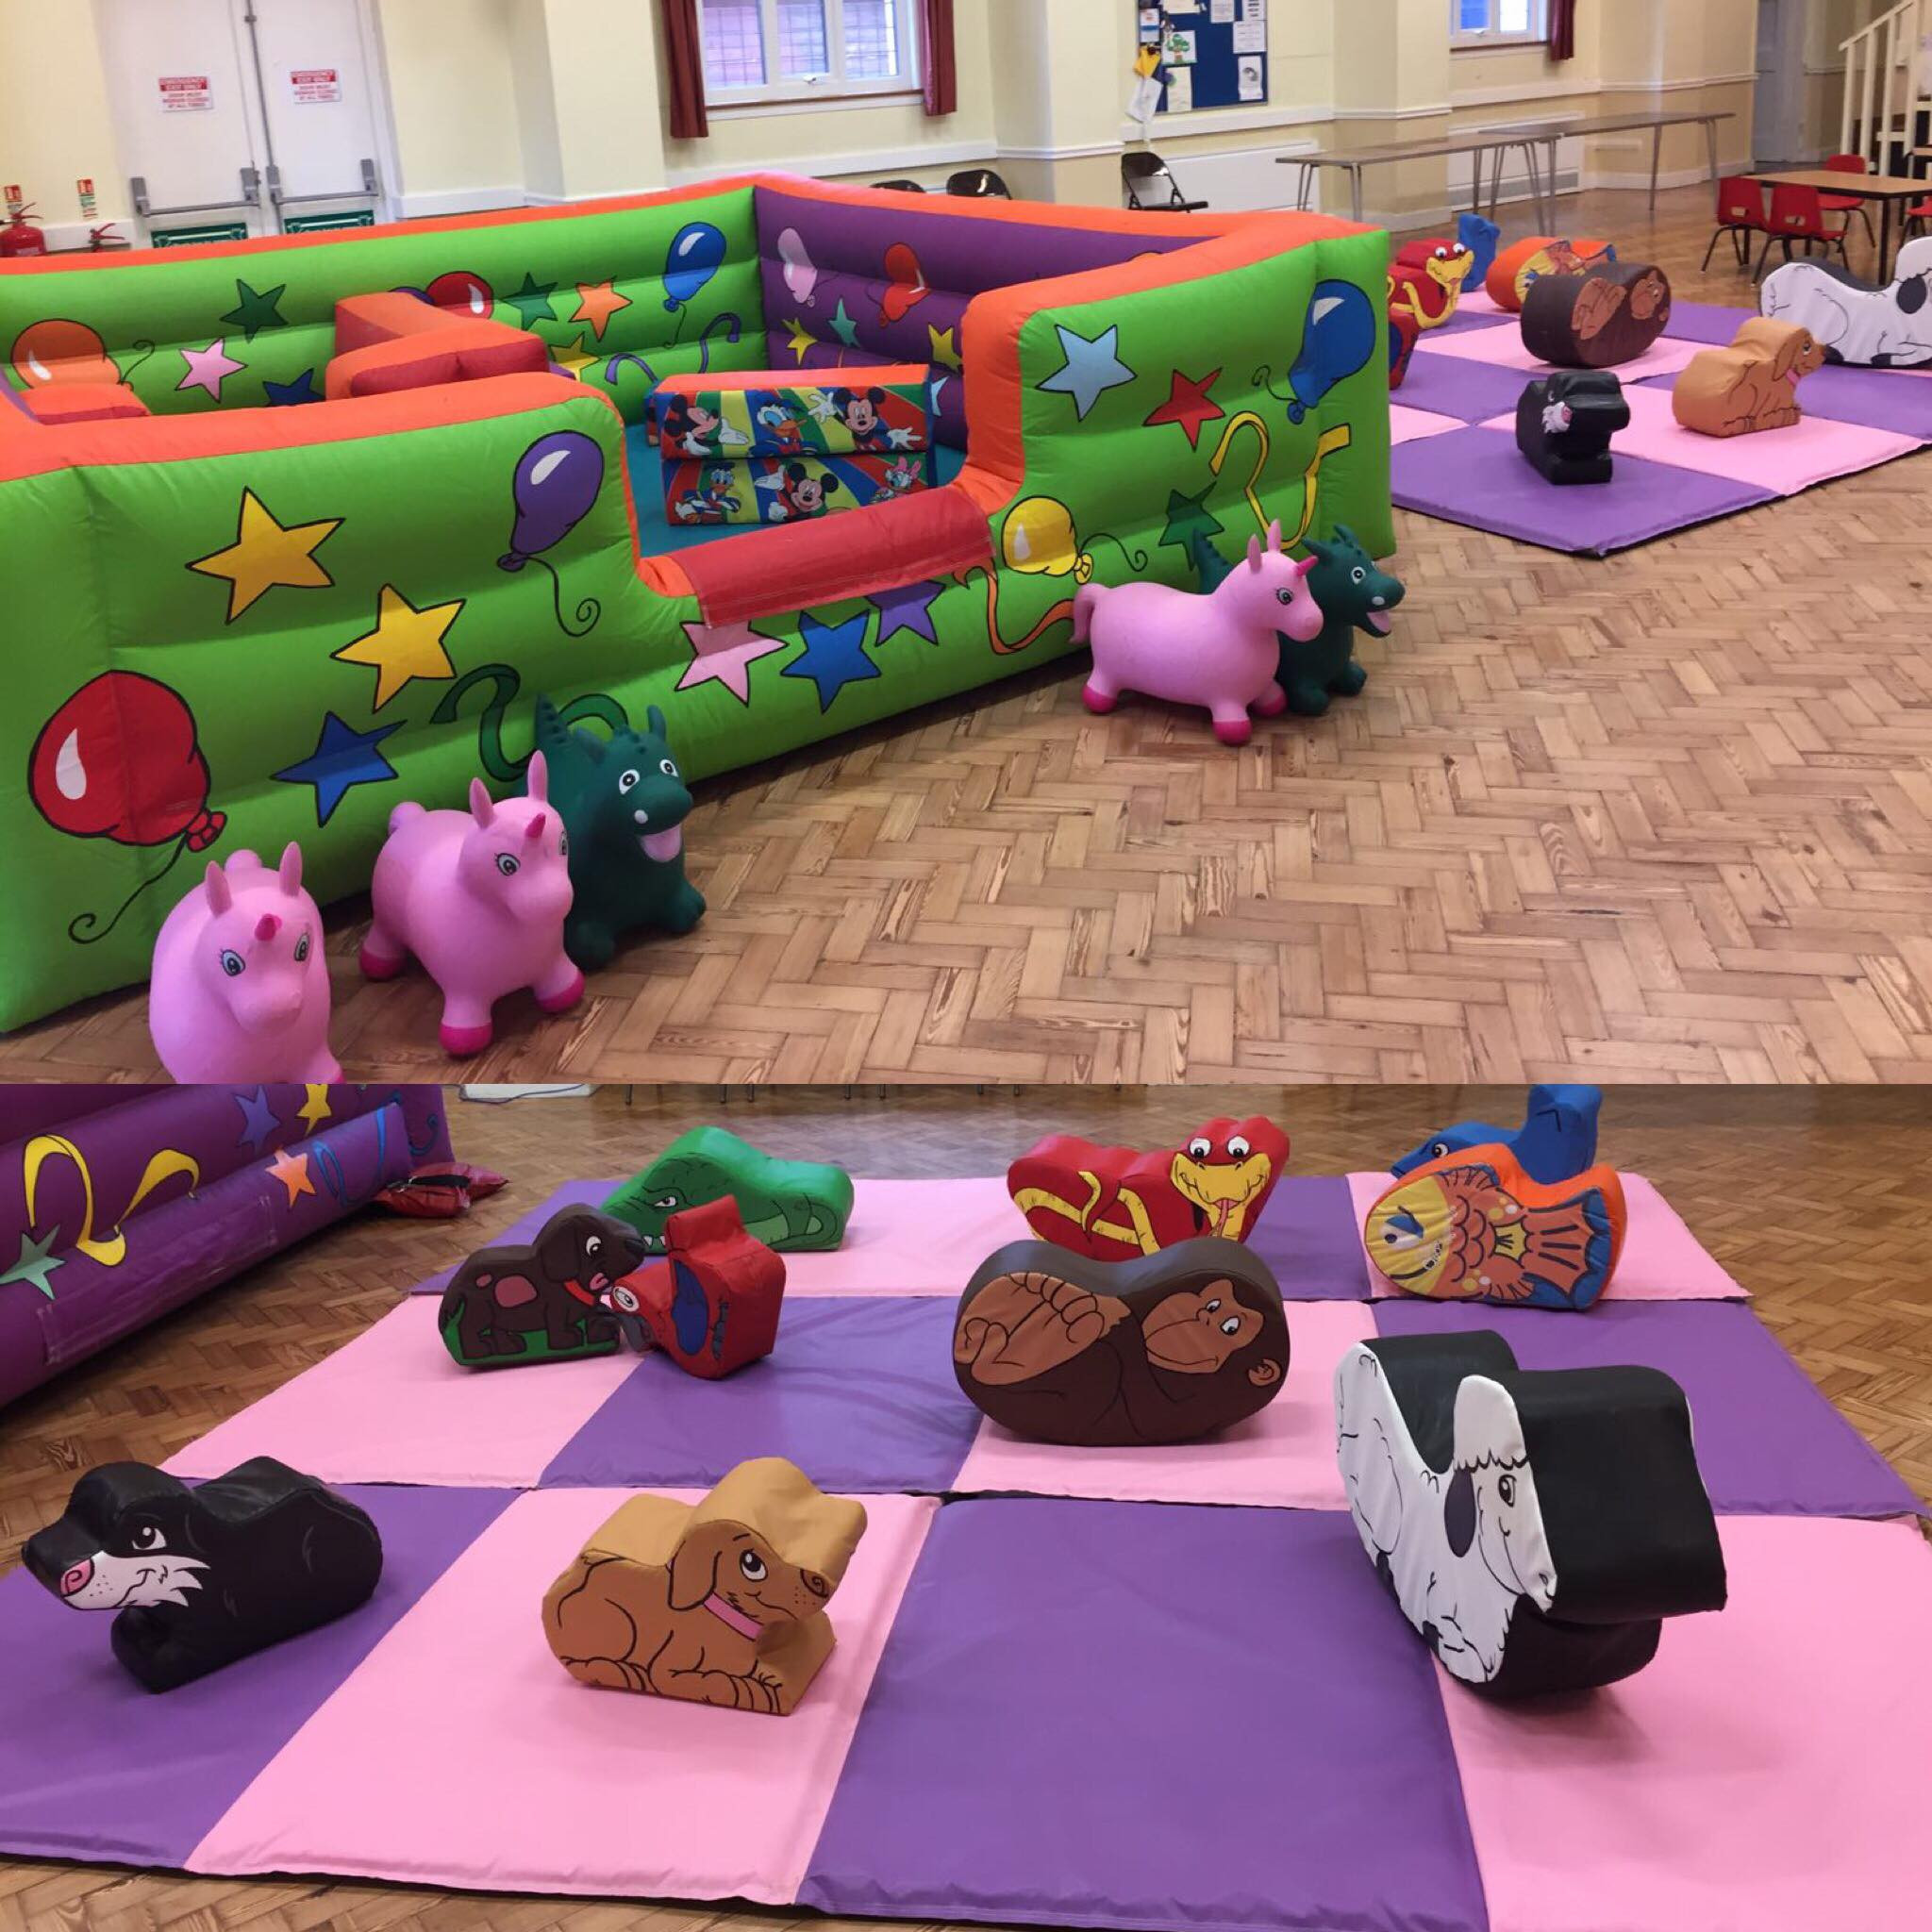 Large Ball Pit & Soft Play